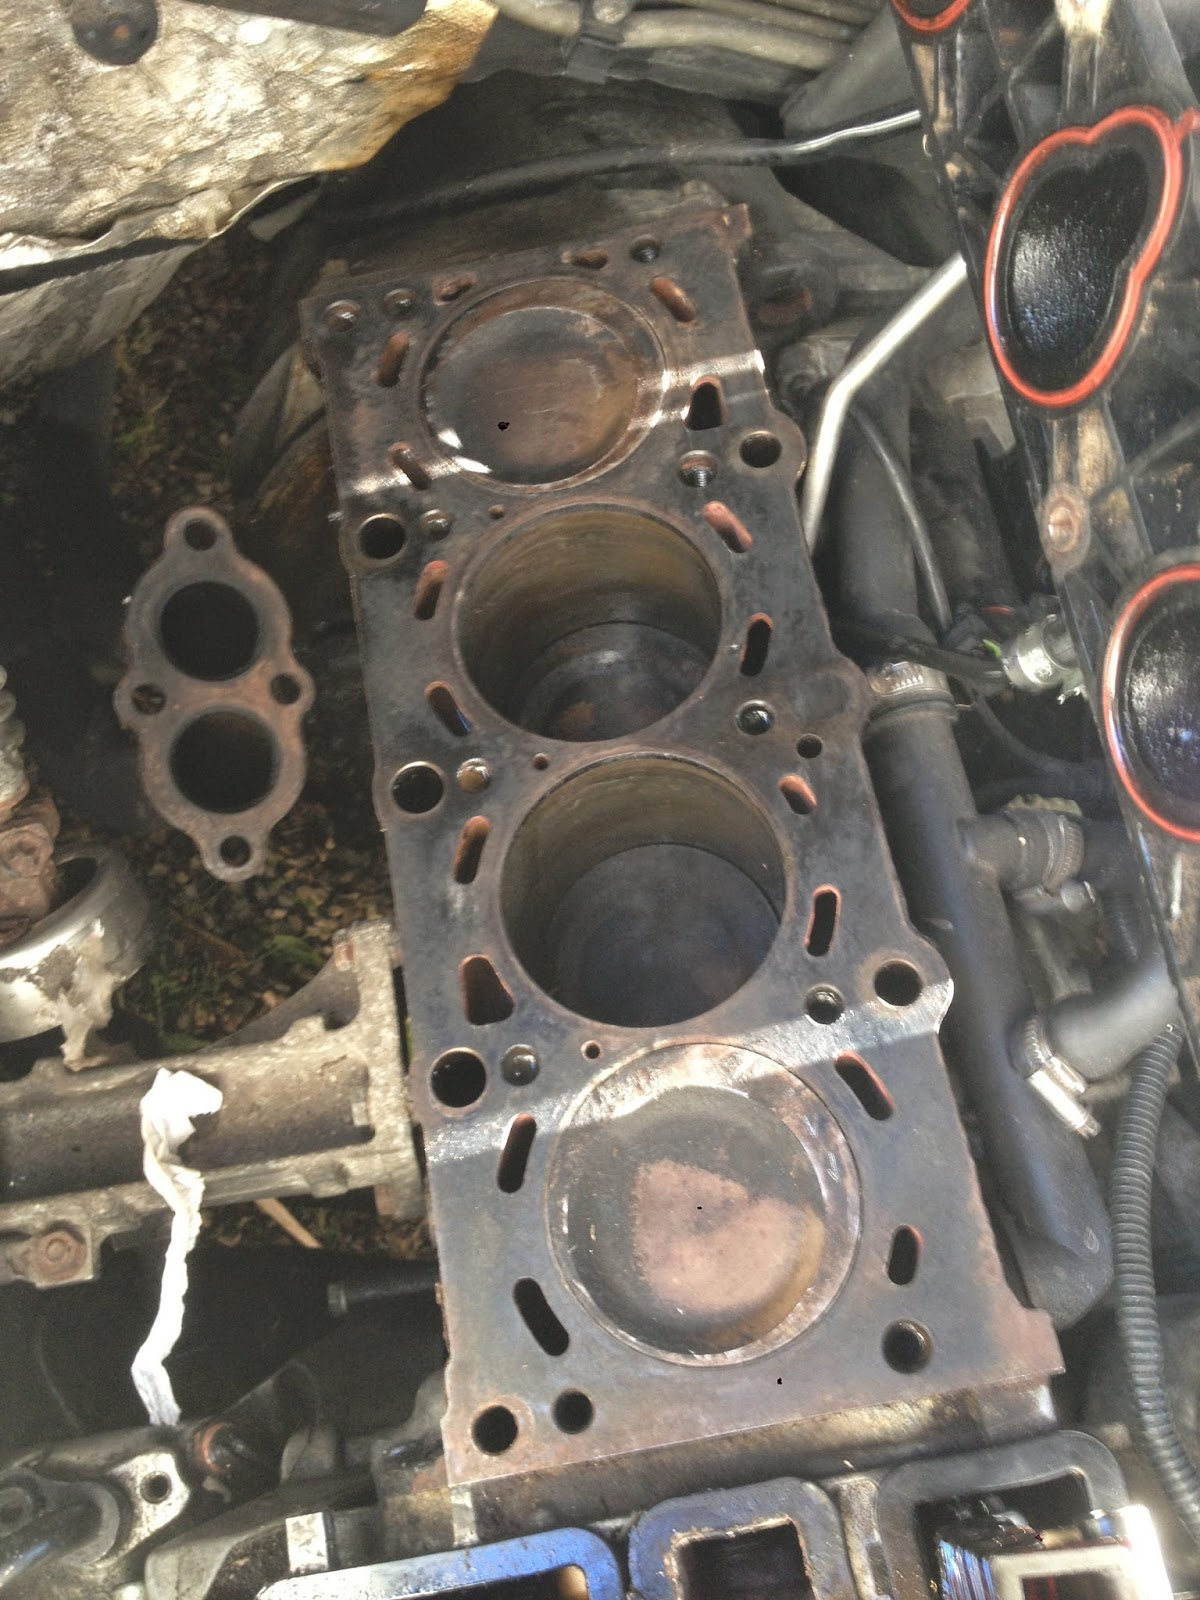 Beemer Lab - formerly Planet 5: E36 316i Compact: New head-gasket.